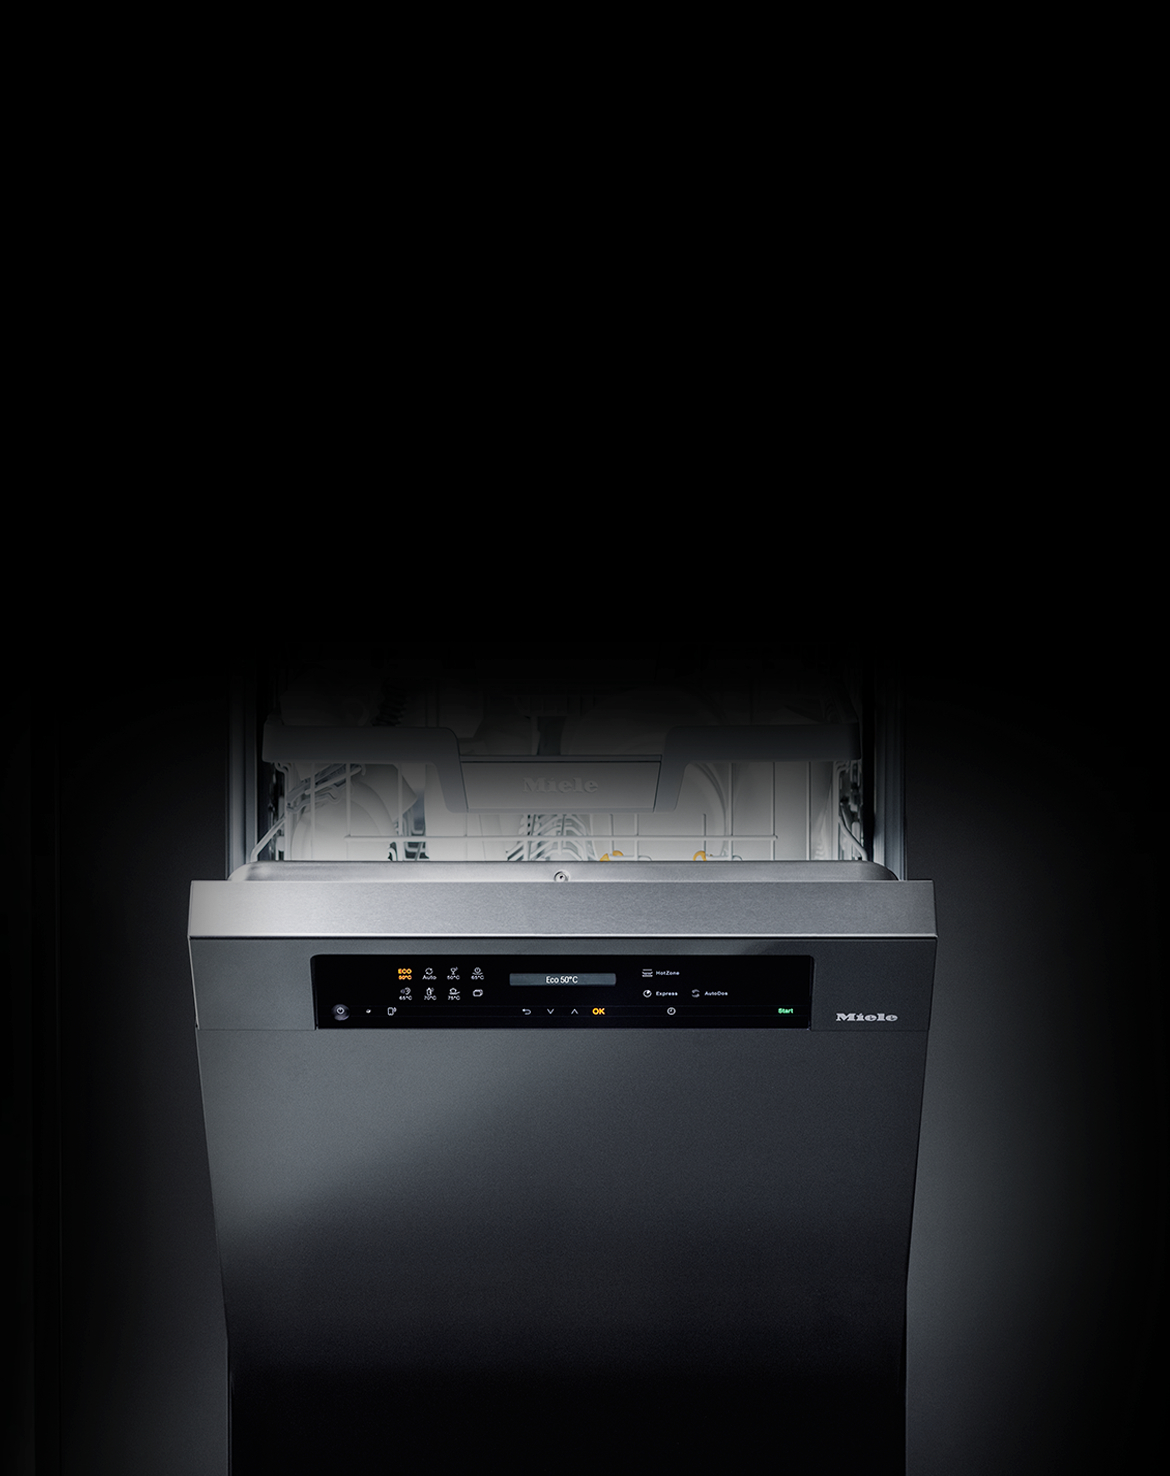 M Touch Display for the new Miele G 7000 Dishwasher